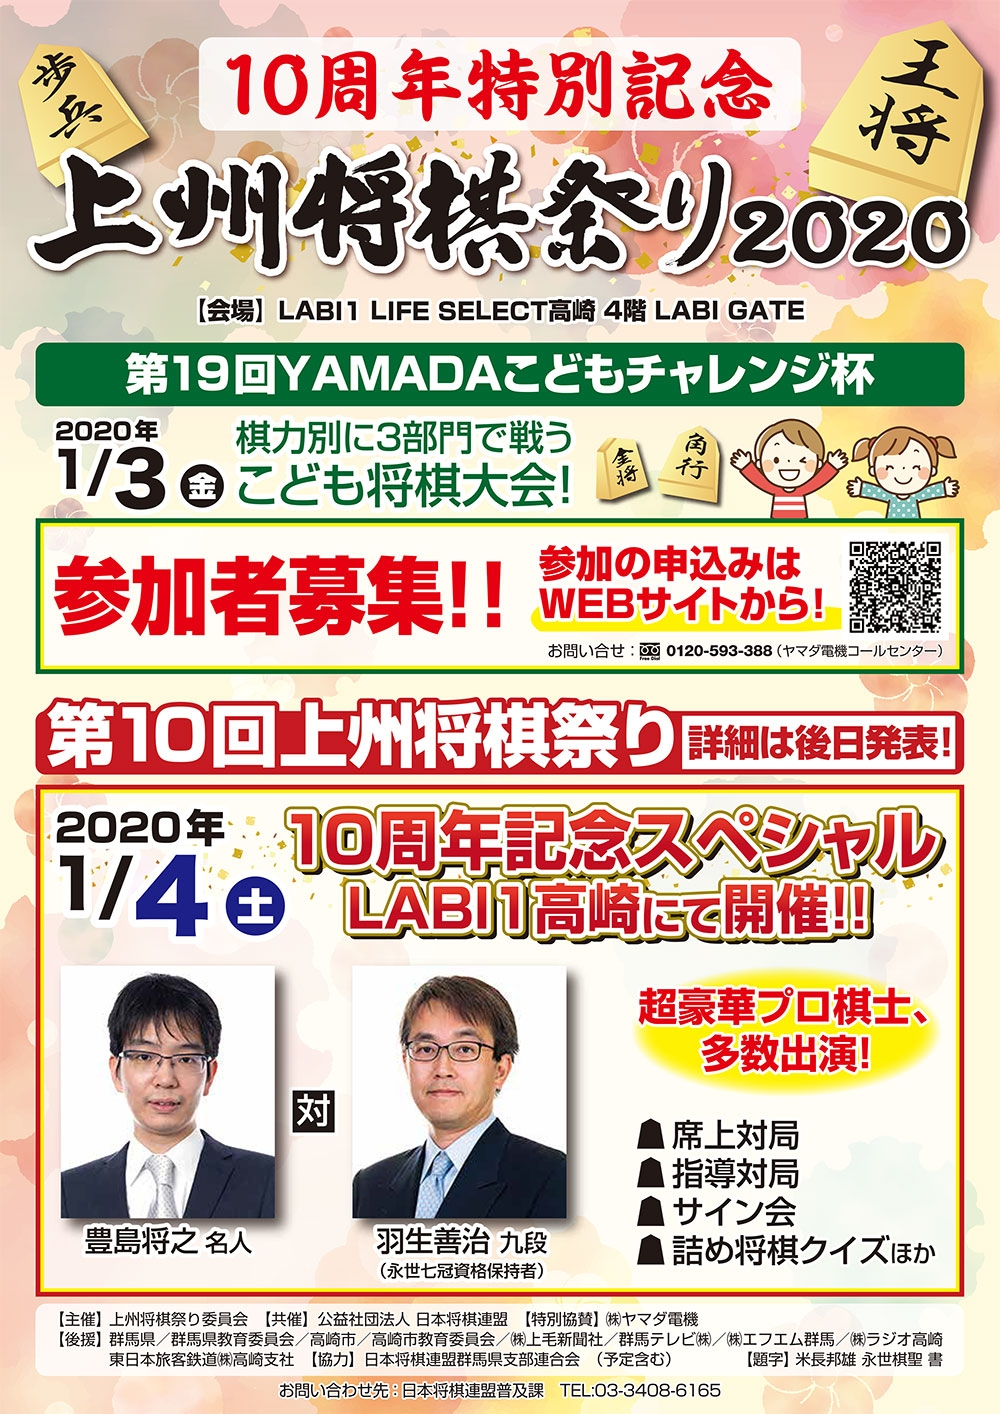 https://www.shogi.or.jp/event/jyosyu2020winter.jpg